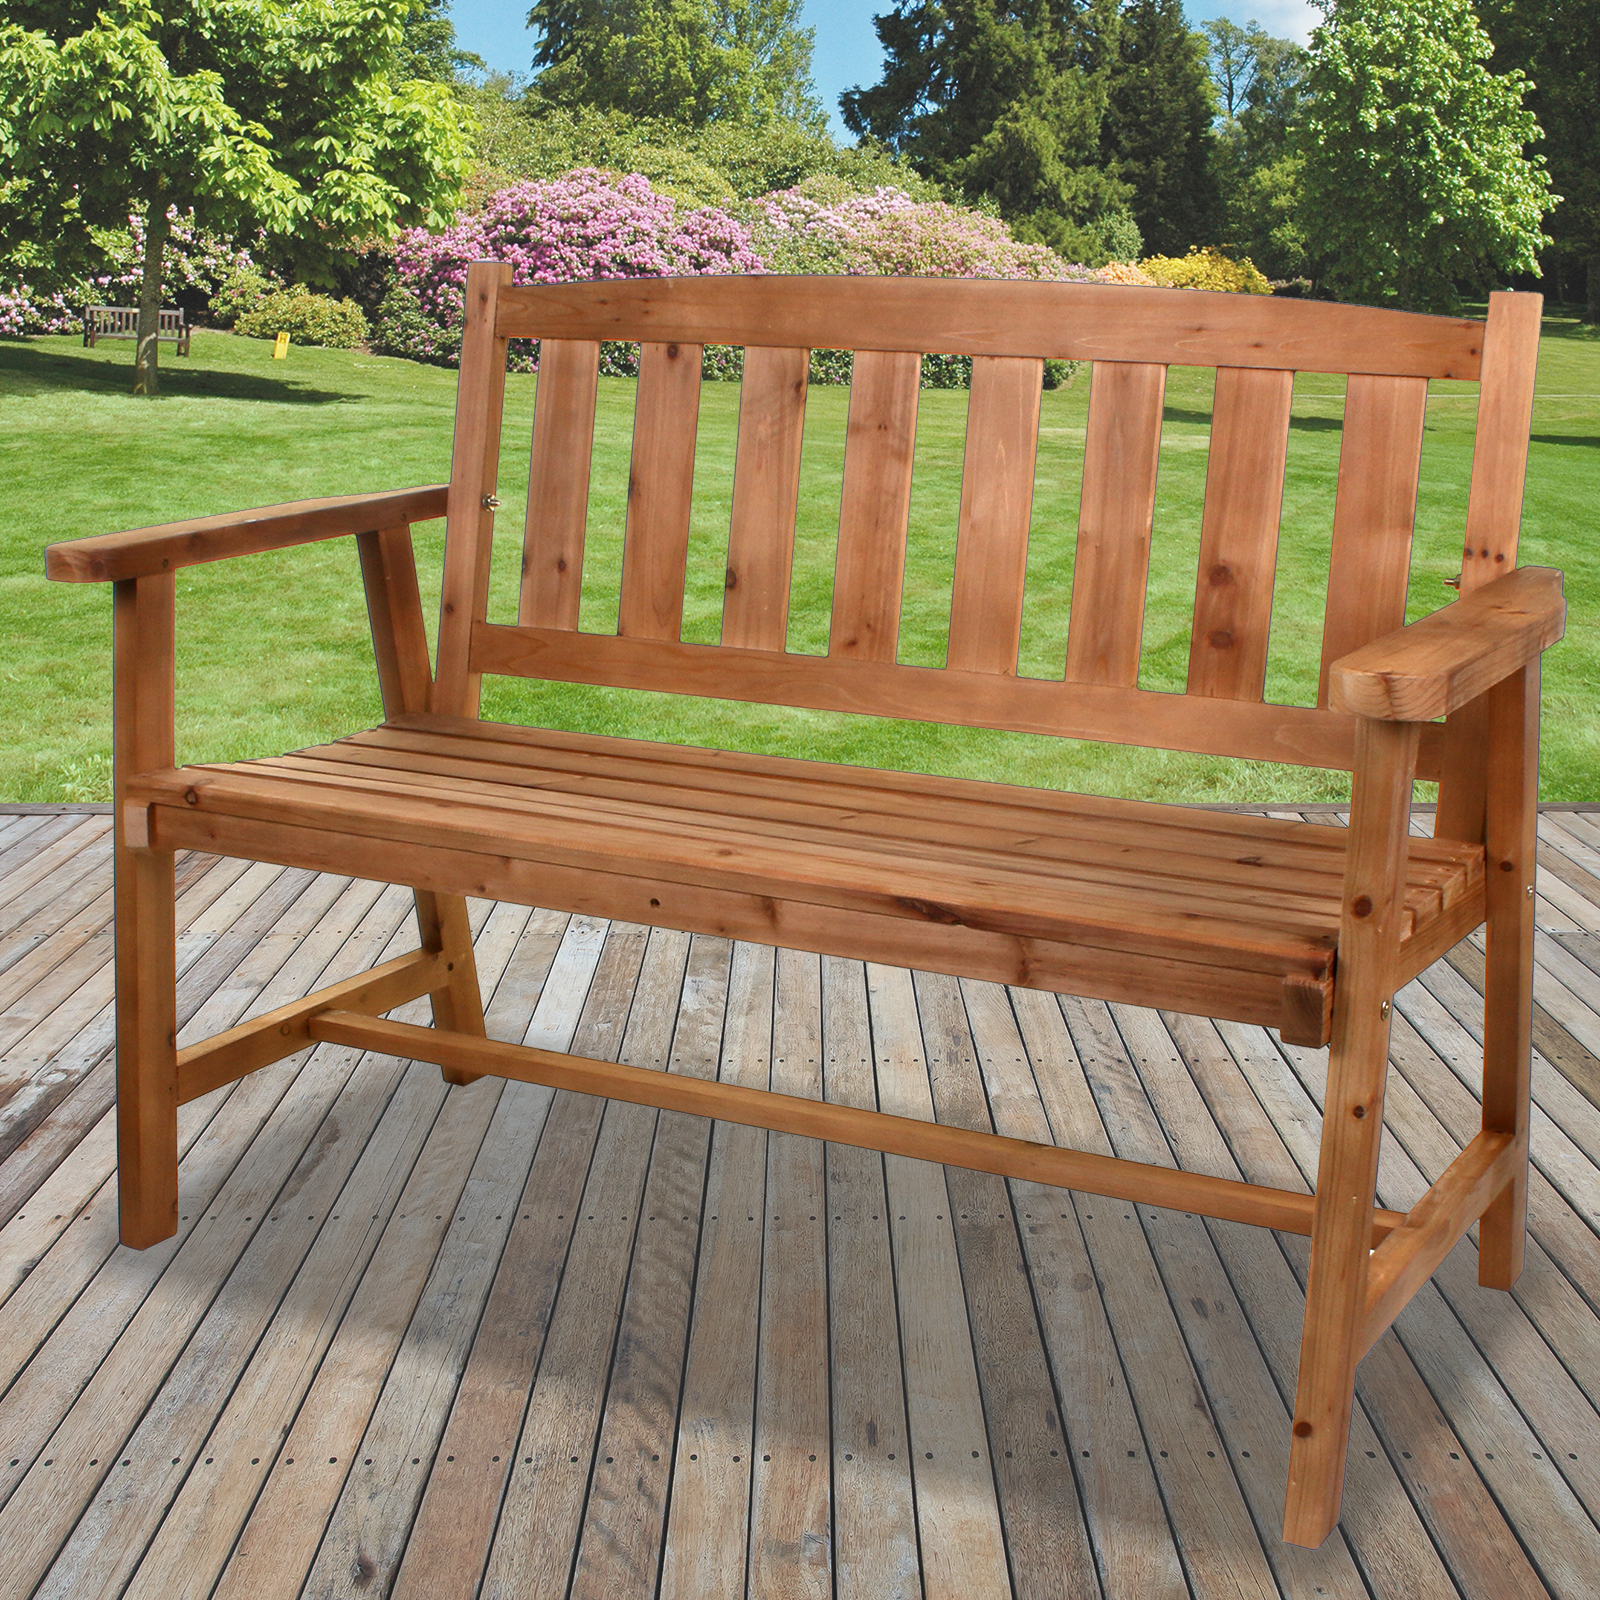 Excellent Details About 2 3 Seater Wooden Bench Outdoor Garden Patio Seating Large Classic Furniture New Squirreltailoven Fun Painted Chair Ideas Images Squirreltailovenorg